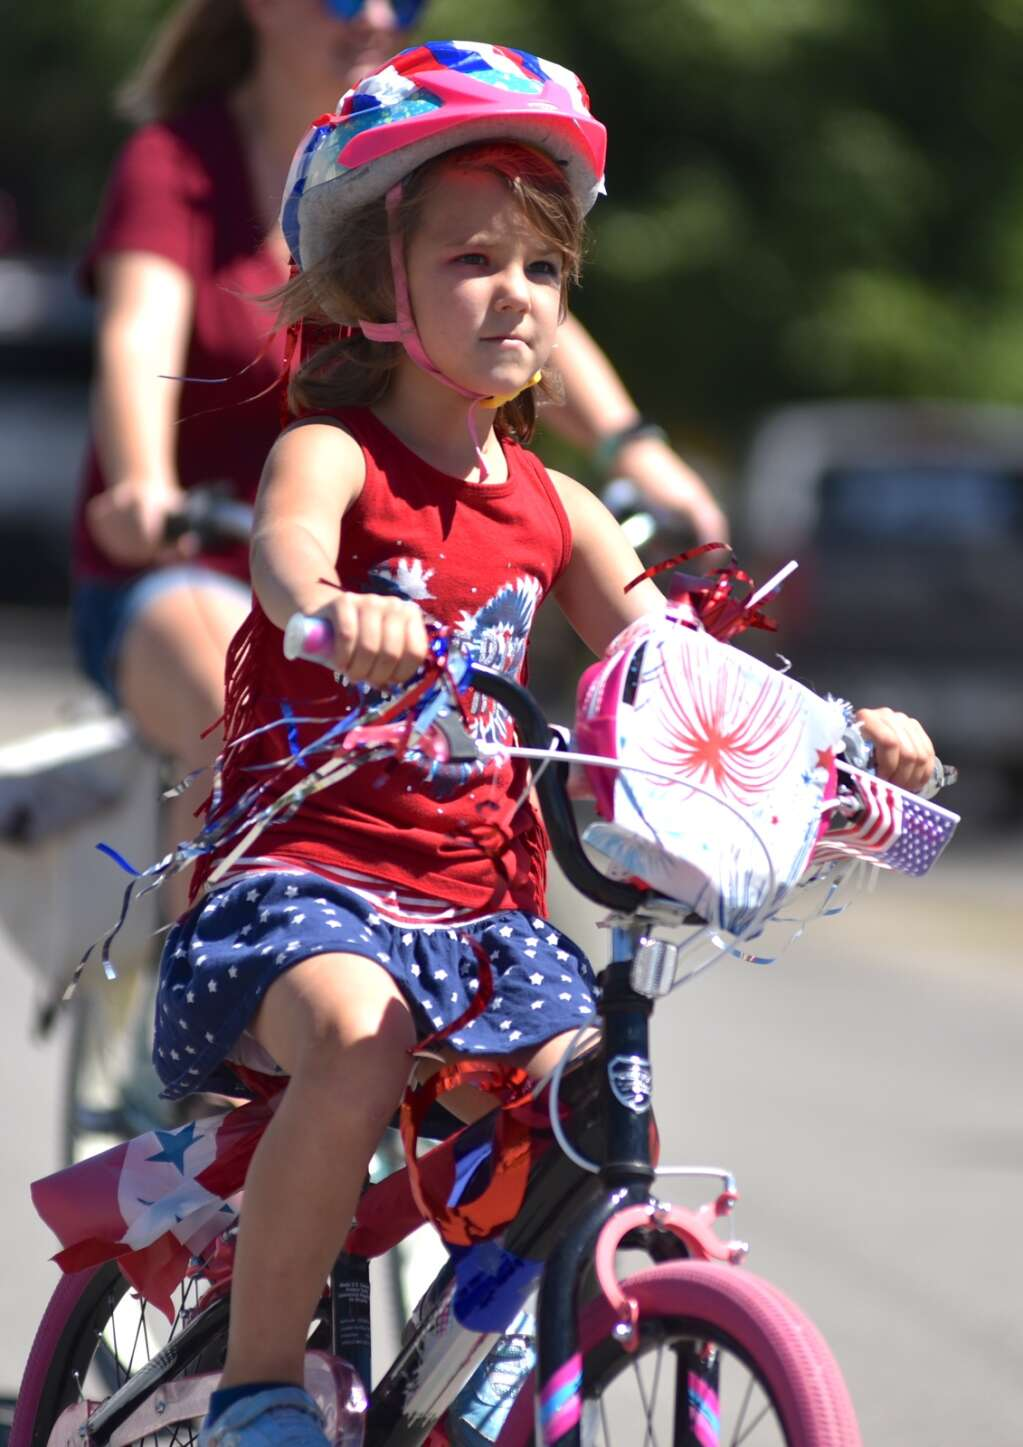 Fourth of July Bike Parade 2021 at Polhamus Park in Granby   Amy Golden / agolden@skyhinews.com